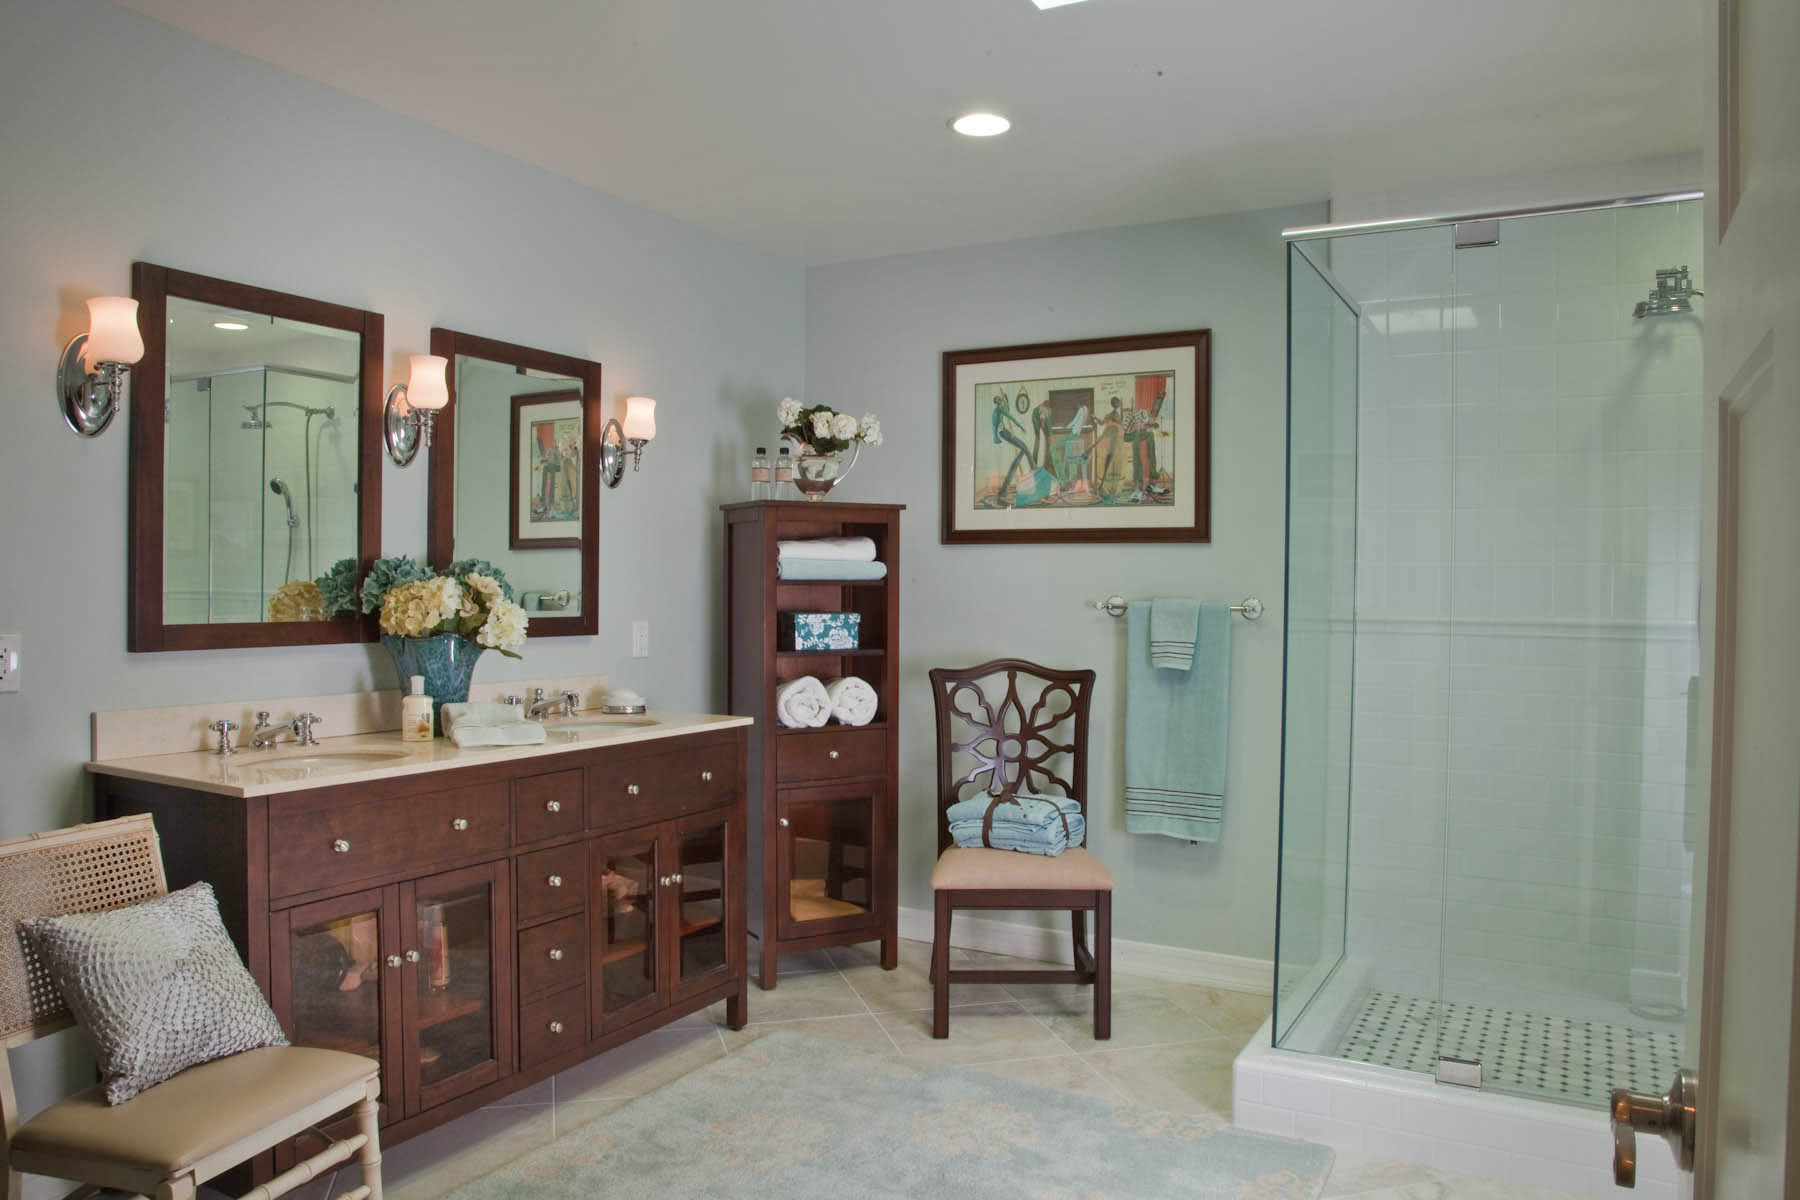 Custom Bathroom Cabinets - Curved Face Sinks Two Level -9288